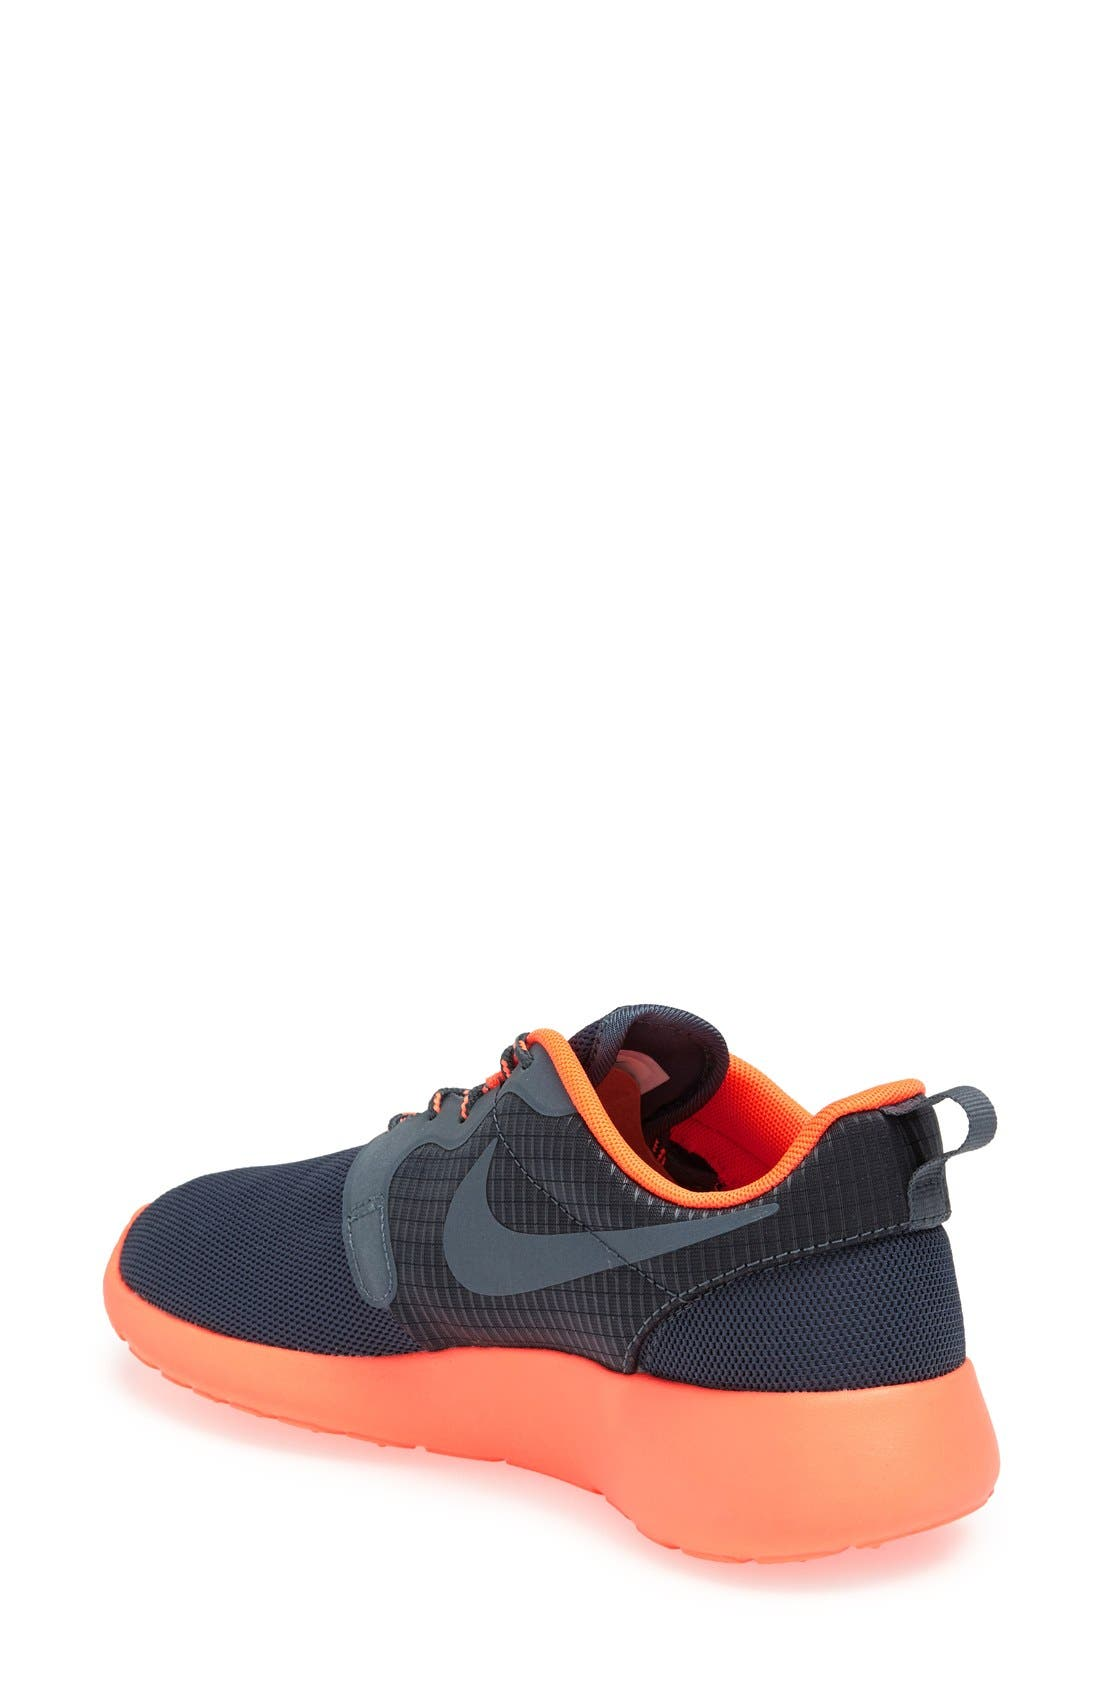 Alternate Image 2  - Nike 'Roshe Run Hyperfuse' Sneaker (Women)